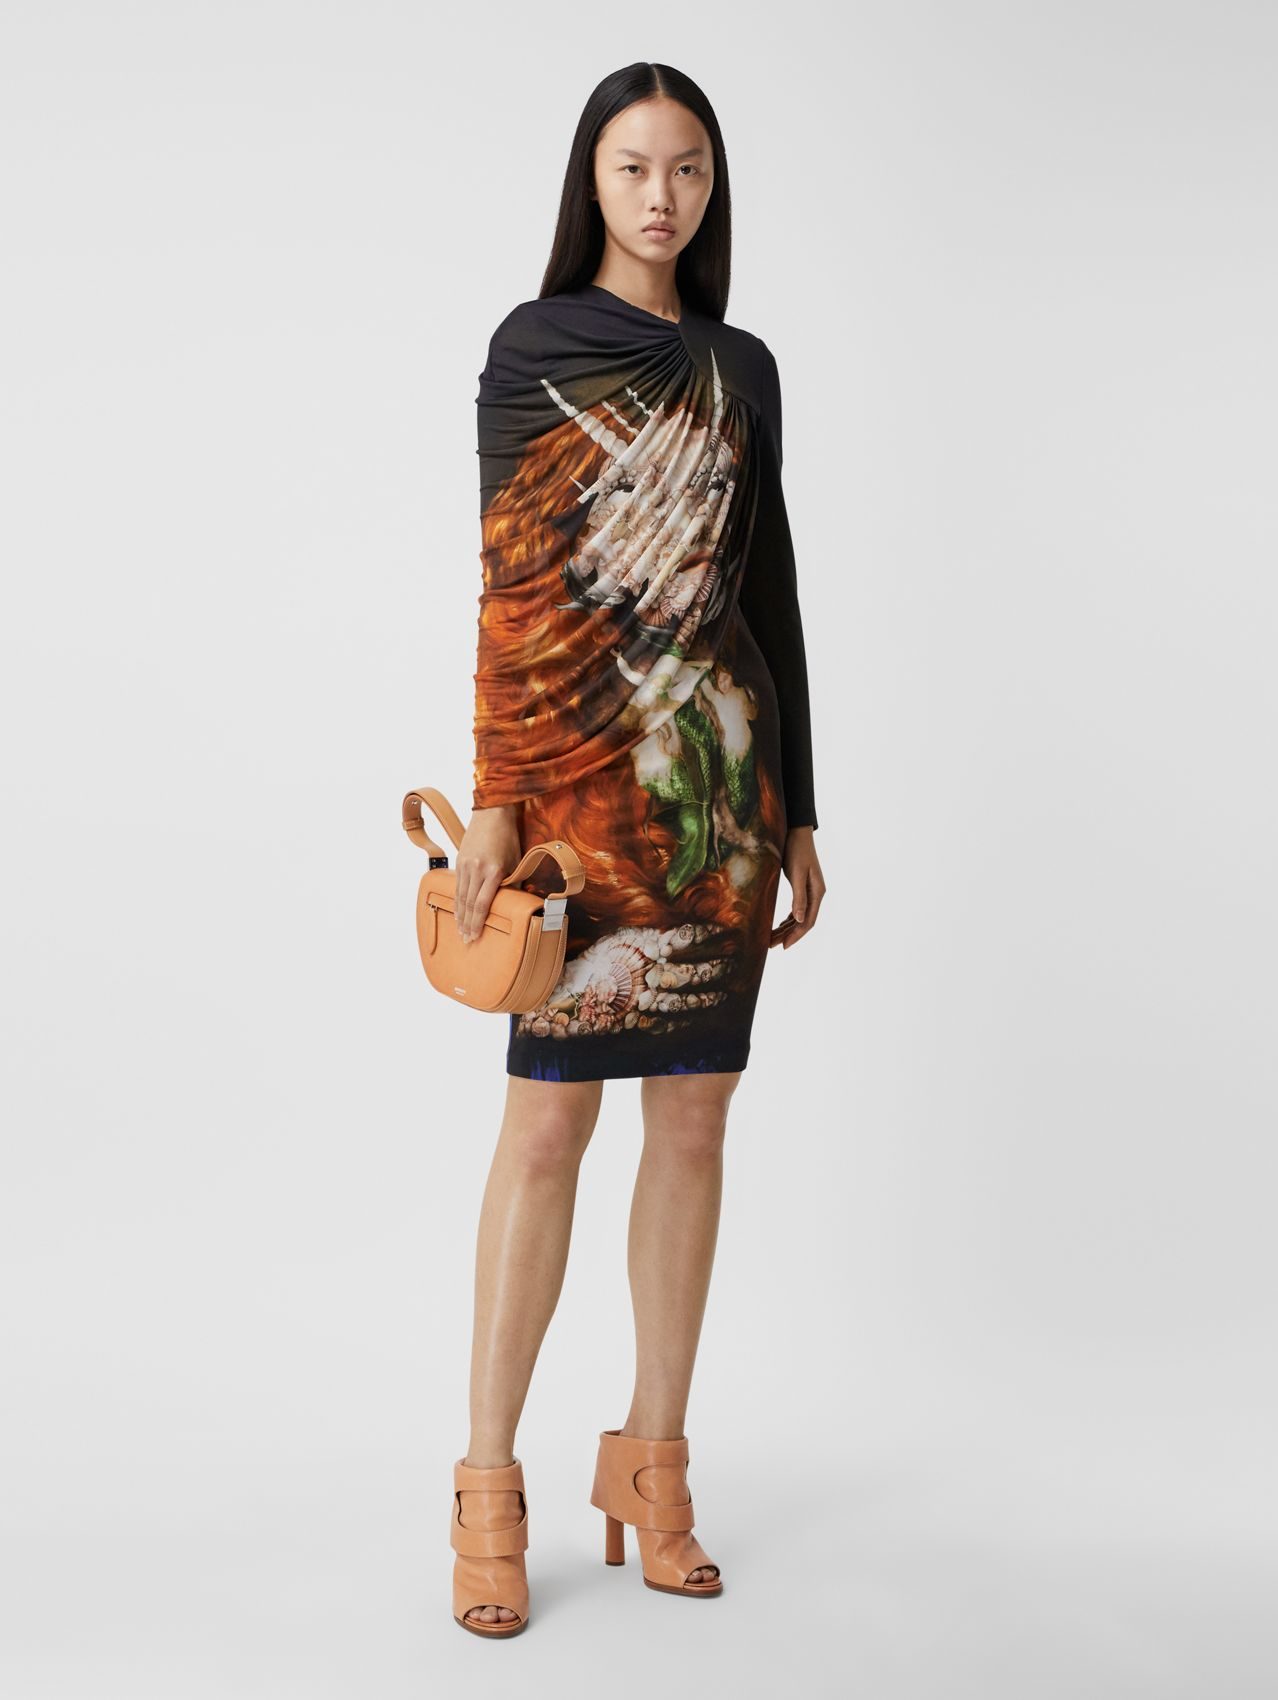 Cape Detail Sea Maiden Print Stretch Jersey Dress in Orange Saffron